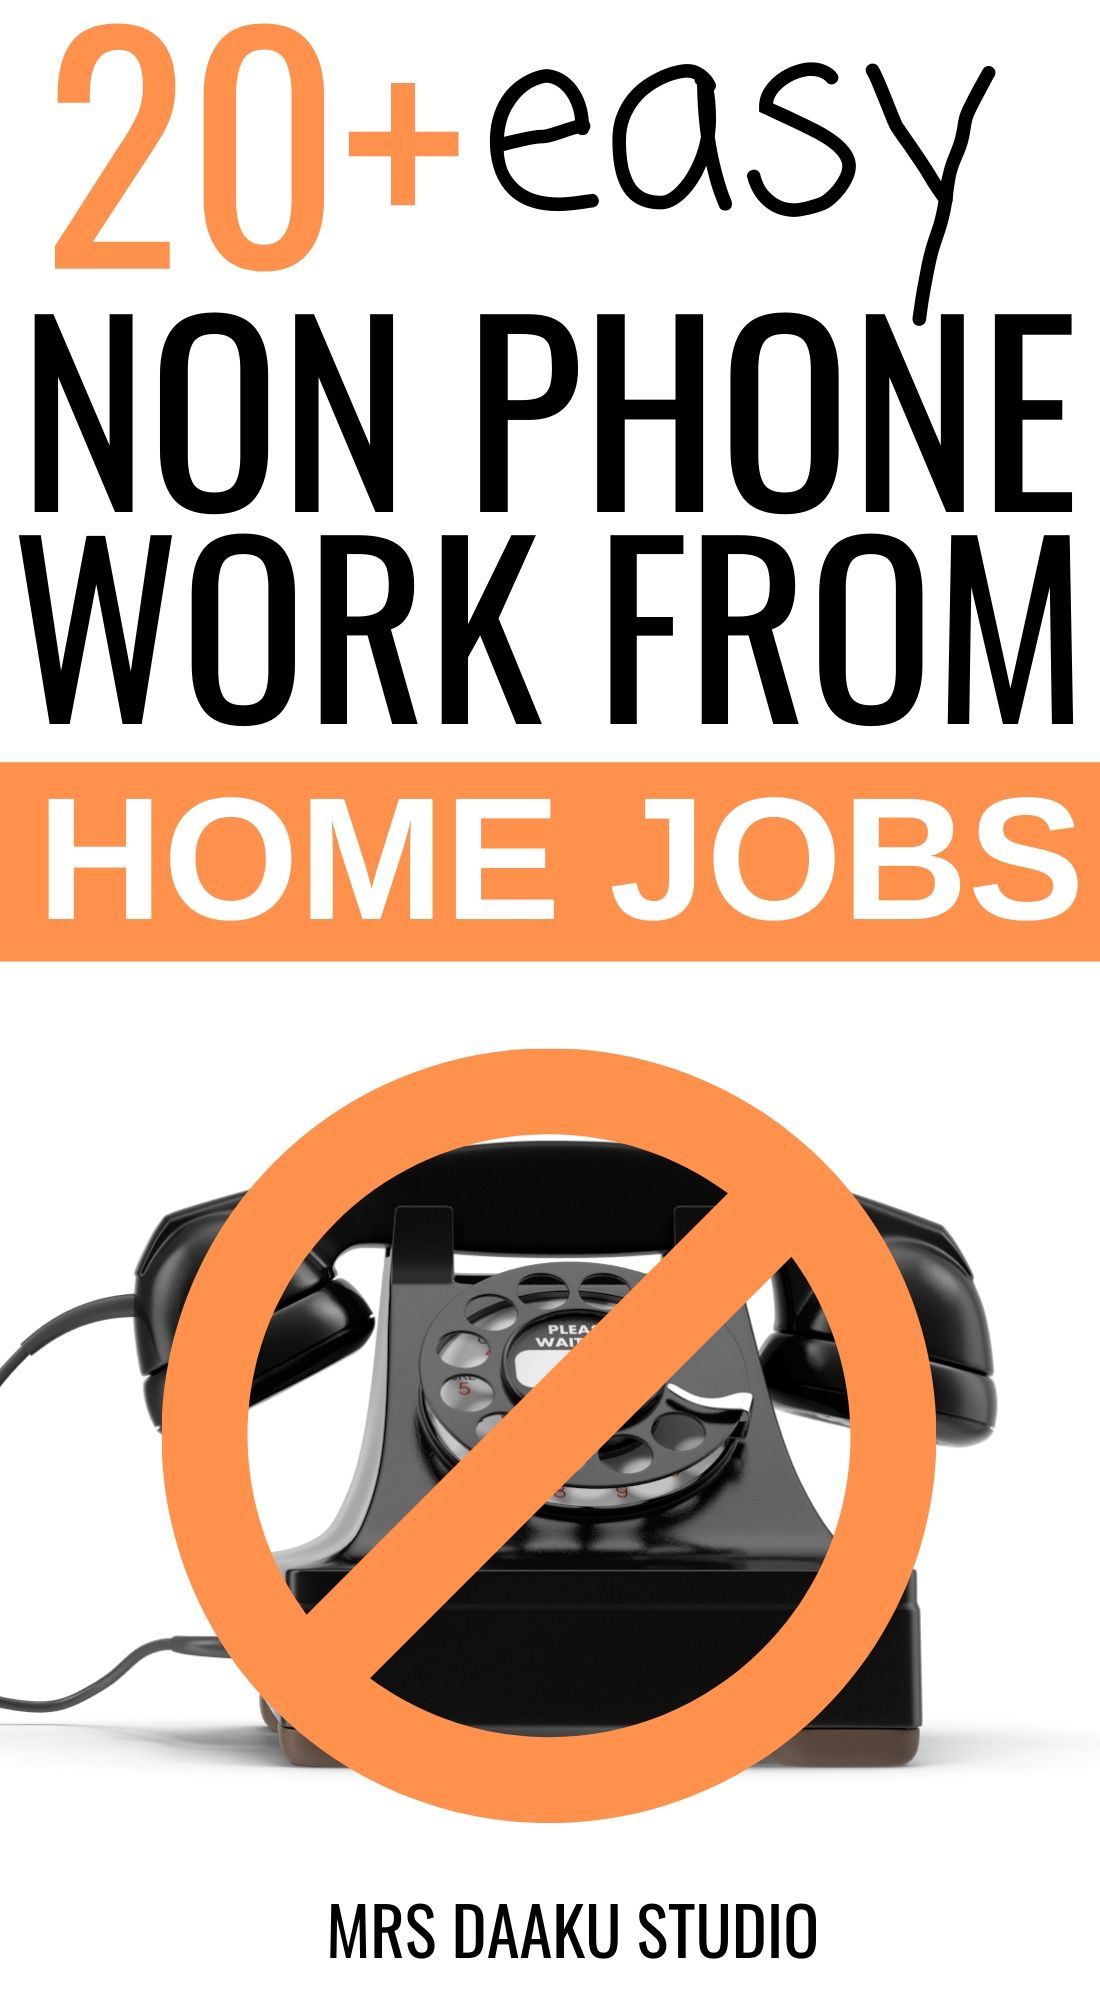 Non Phone Work From Home Jobs 50+ MEGA LIST! in 2020